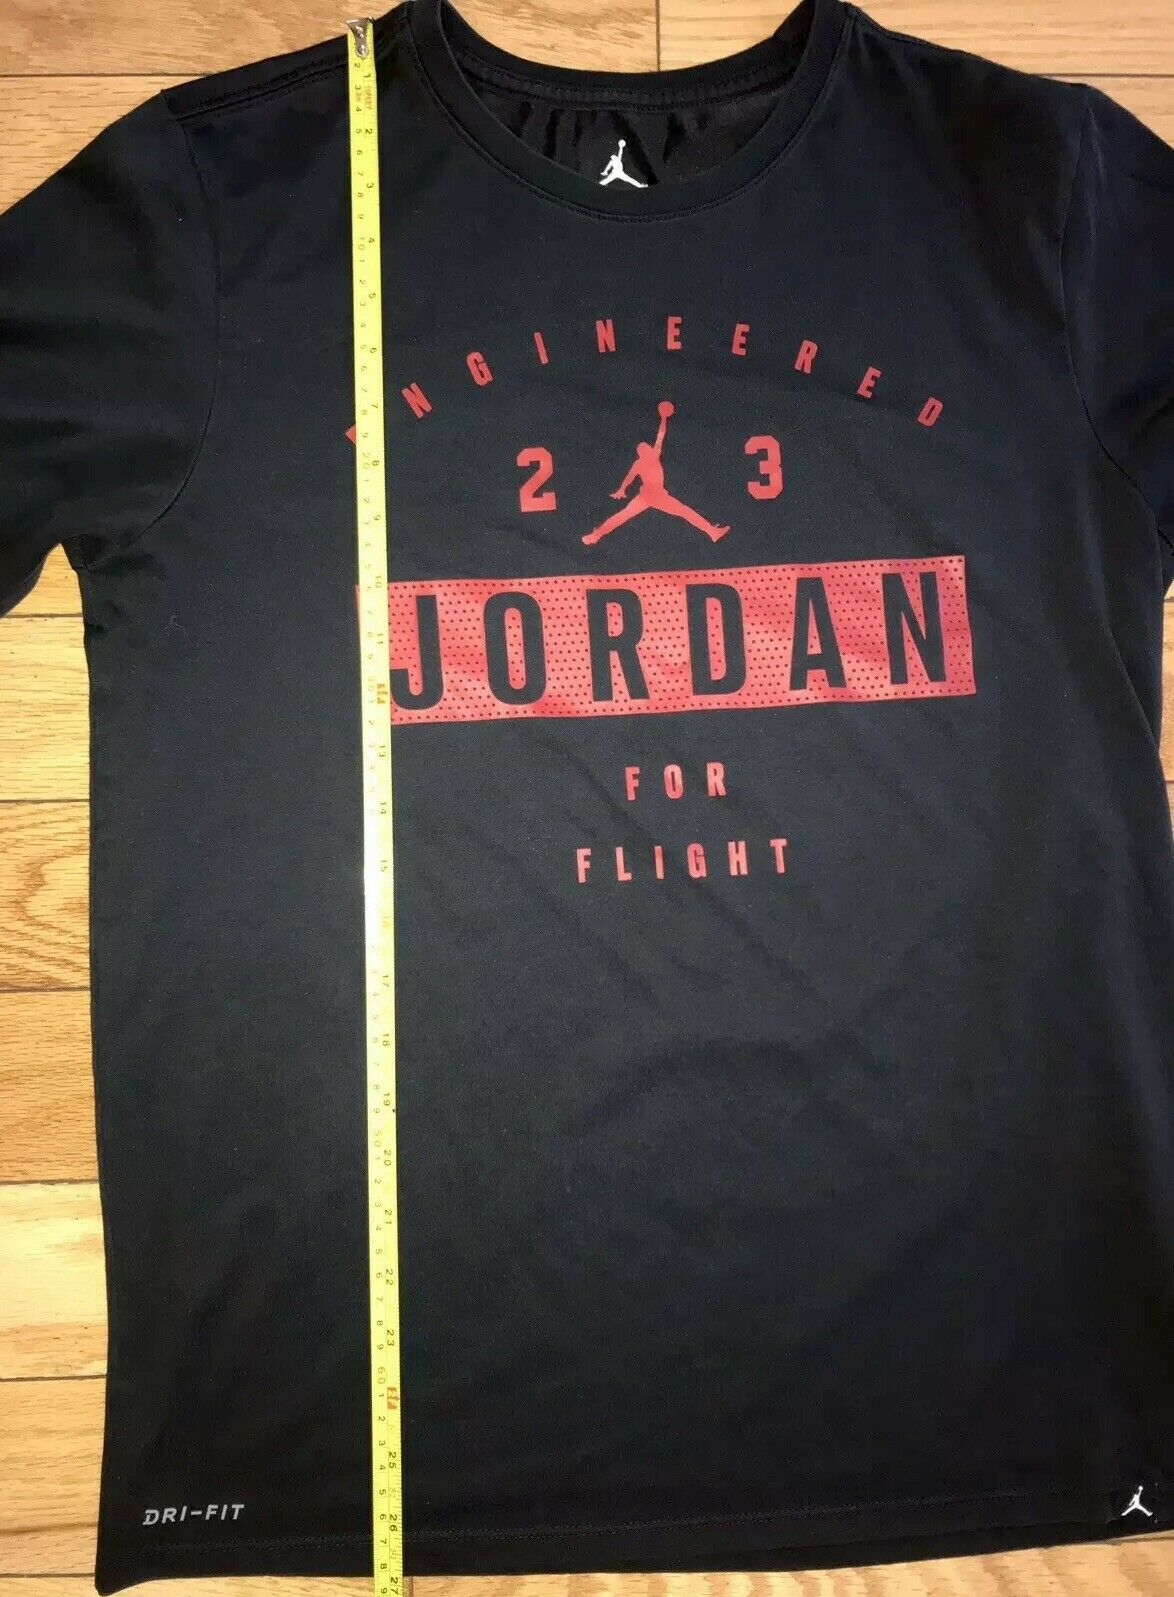 Jordan Boys Reveal Crew Neck Short Sleeve T-Shirt Black 954344-023 Size M NWT